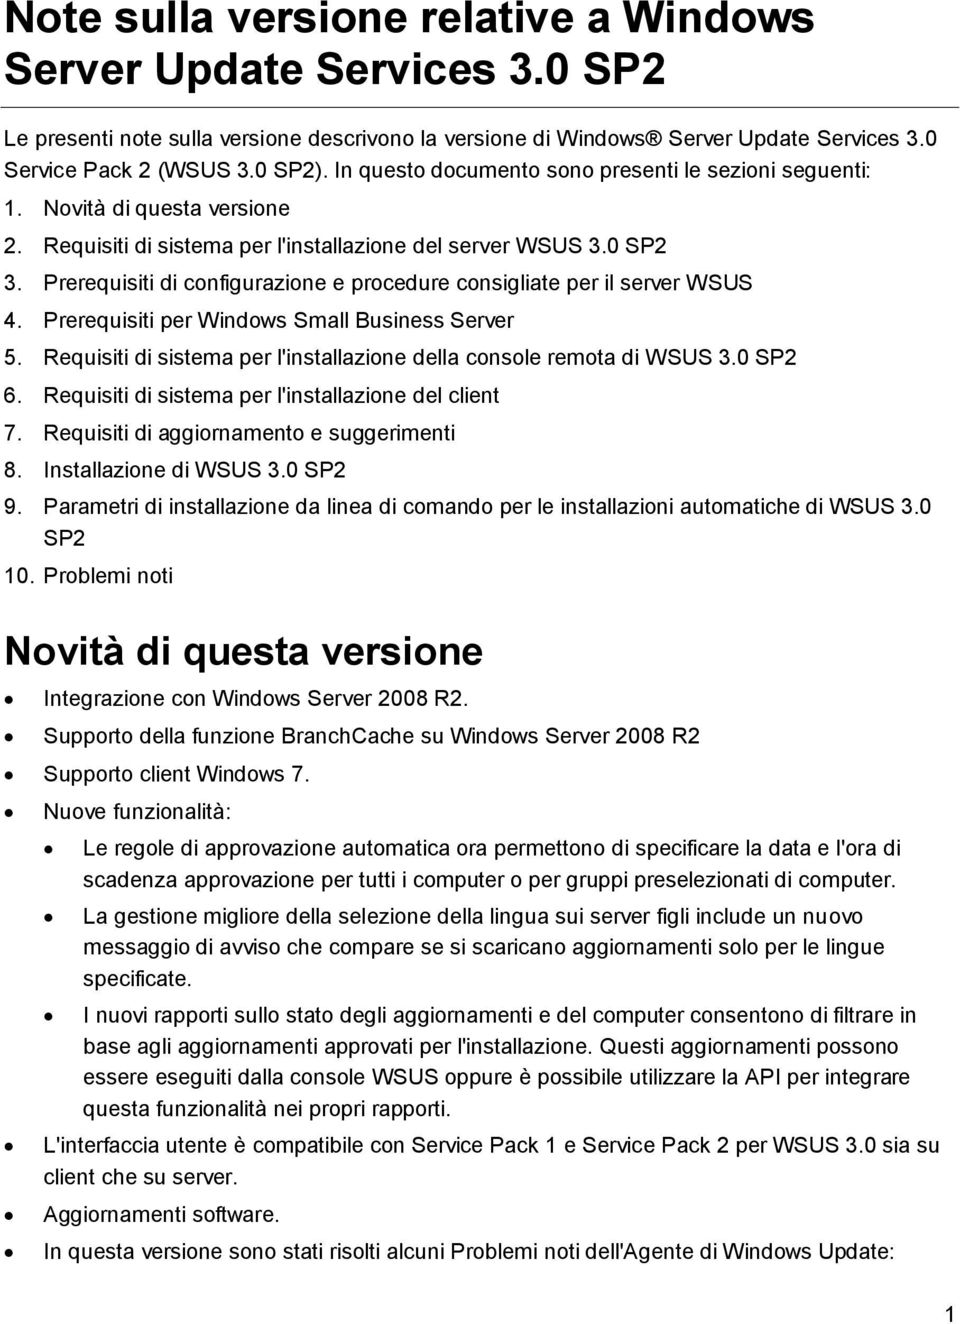 Prerequisiti di configurazione e procedure consigliate per il server WSUS 4. Prerequisiti per Windows Small Business Server 5. Requisiti di sistema per l'installazione della console remota di WSUS 3.